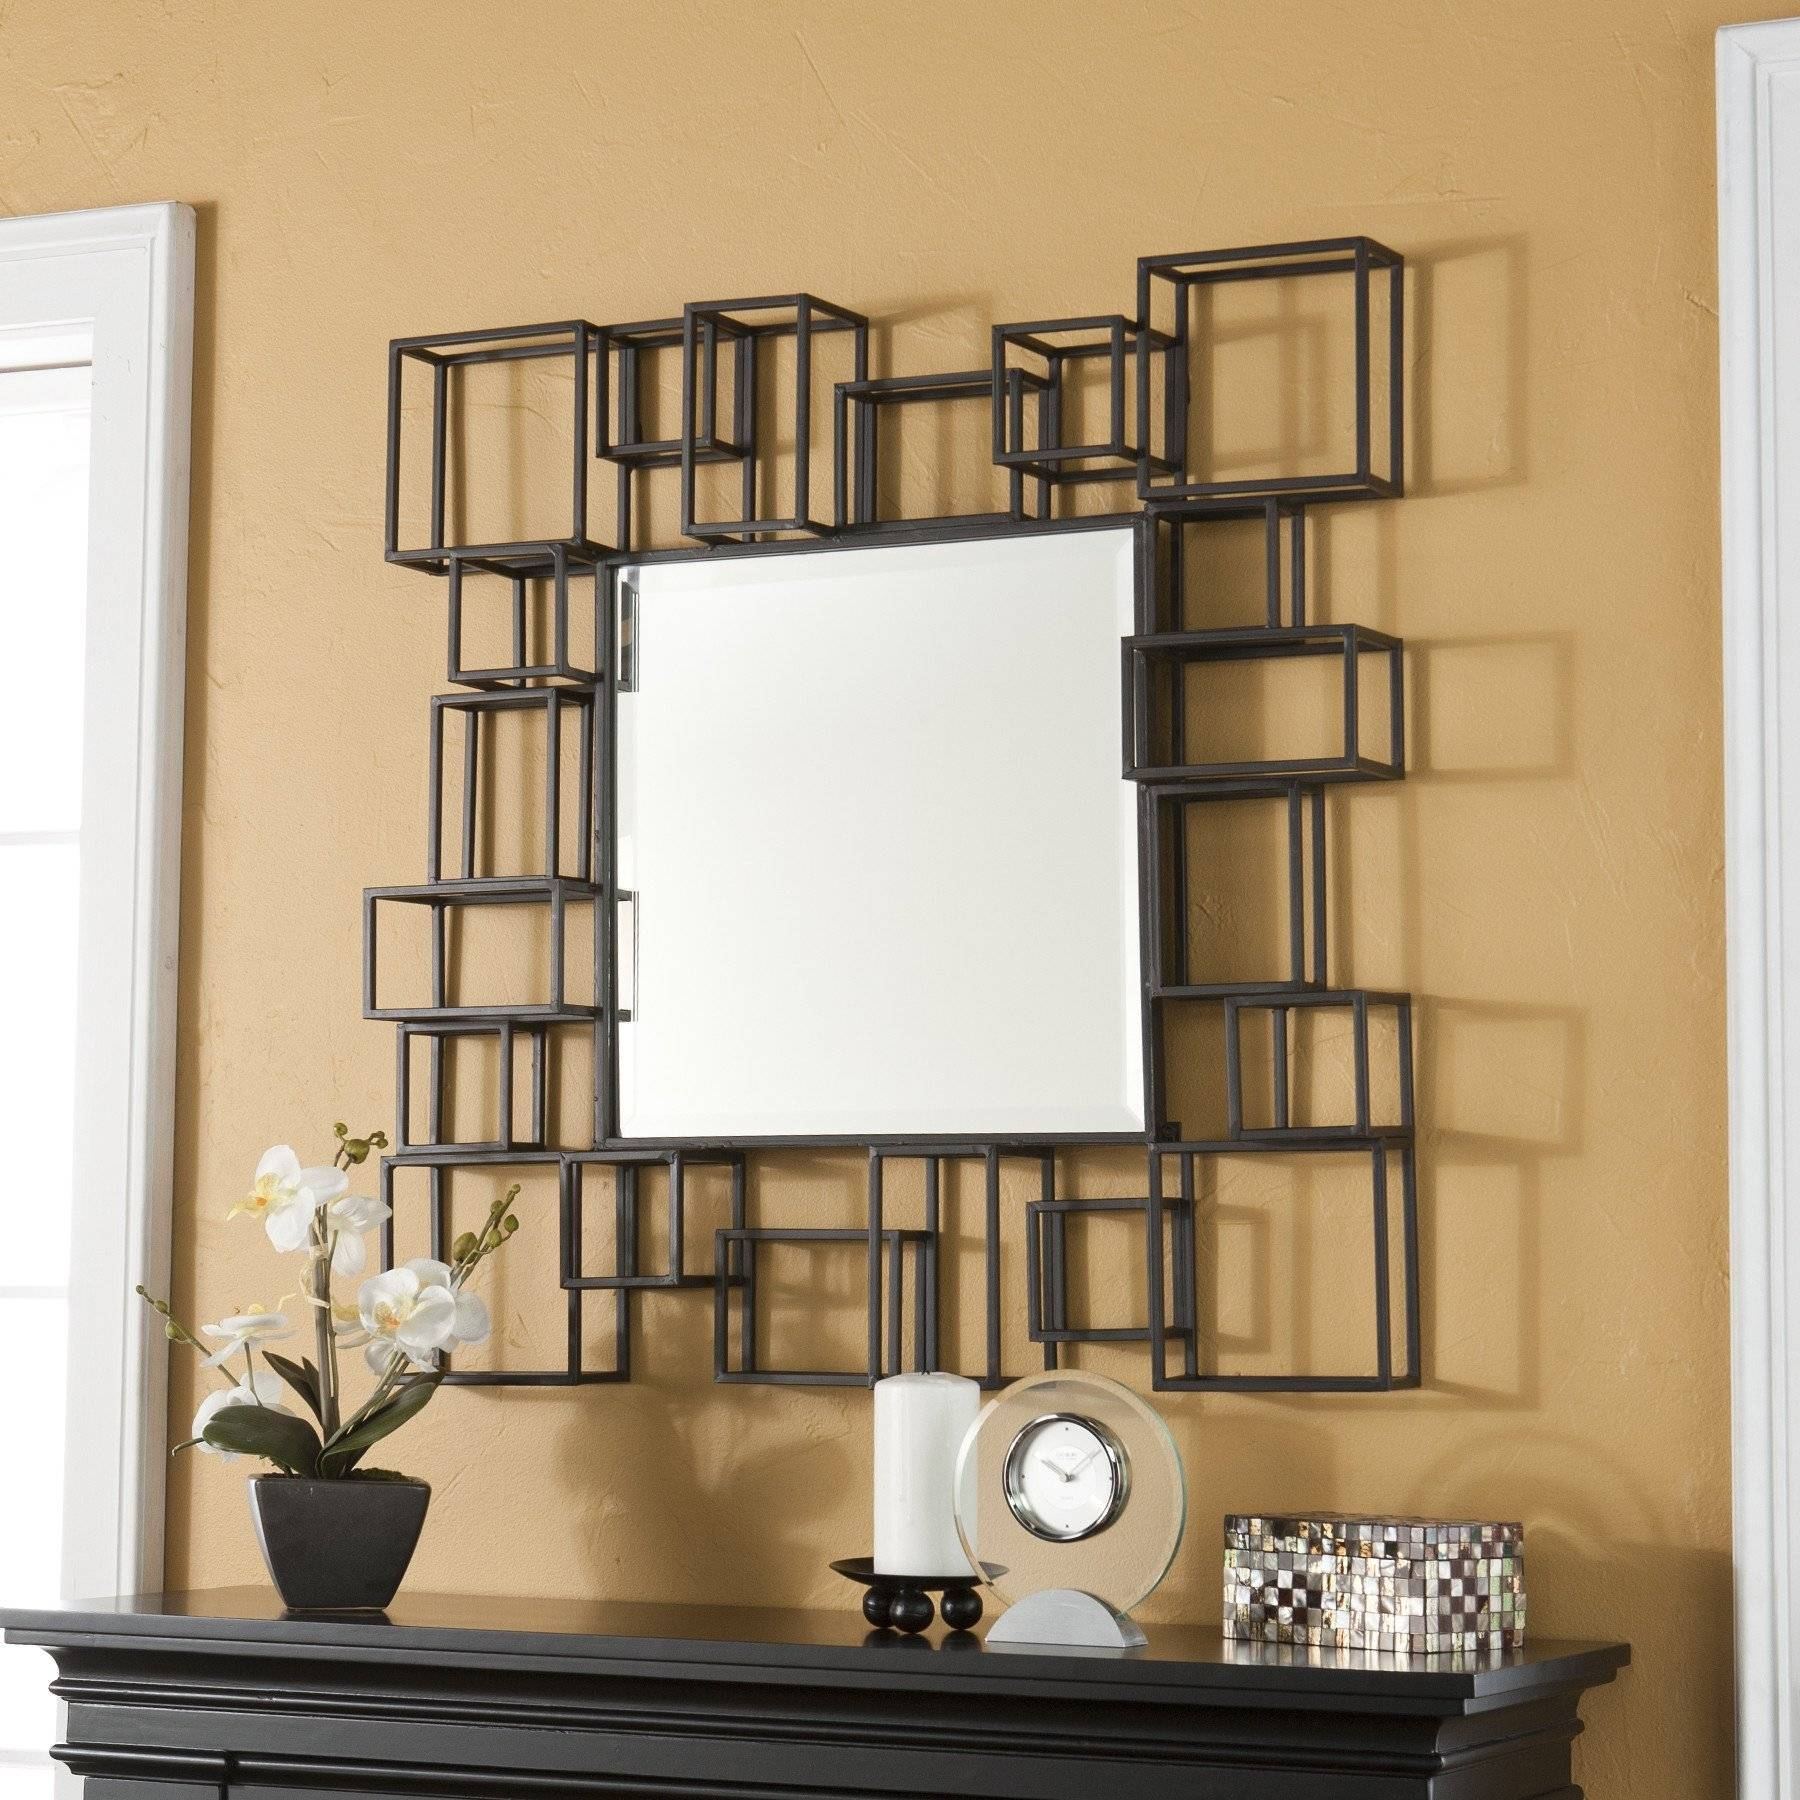 Dressing Table Designs With Long Mirror Designs - Tikspor intended for Long Brown Mirrors (Image 12 of 25)